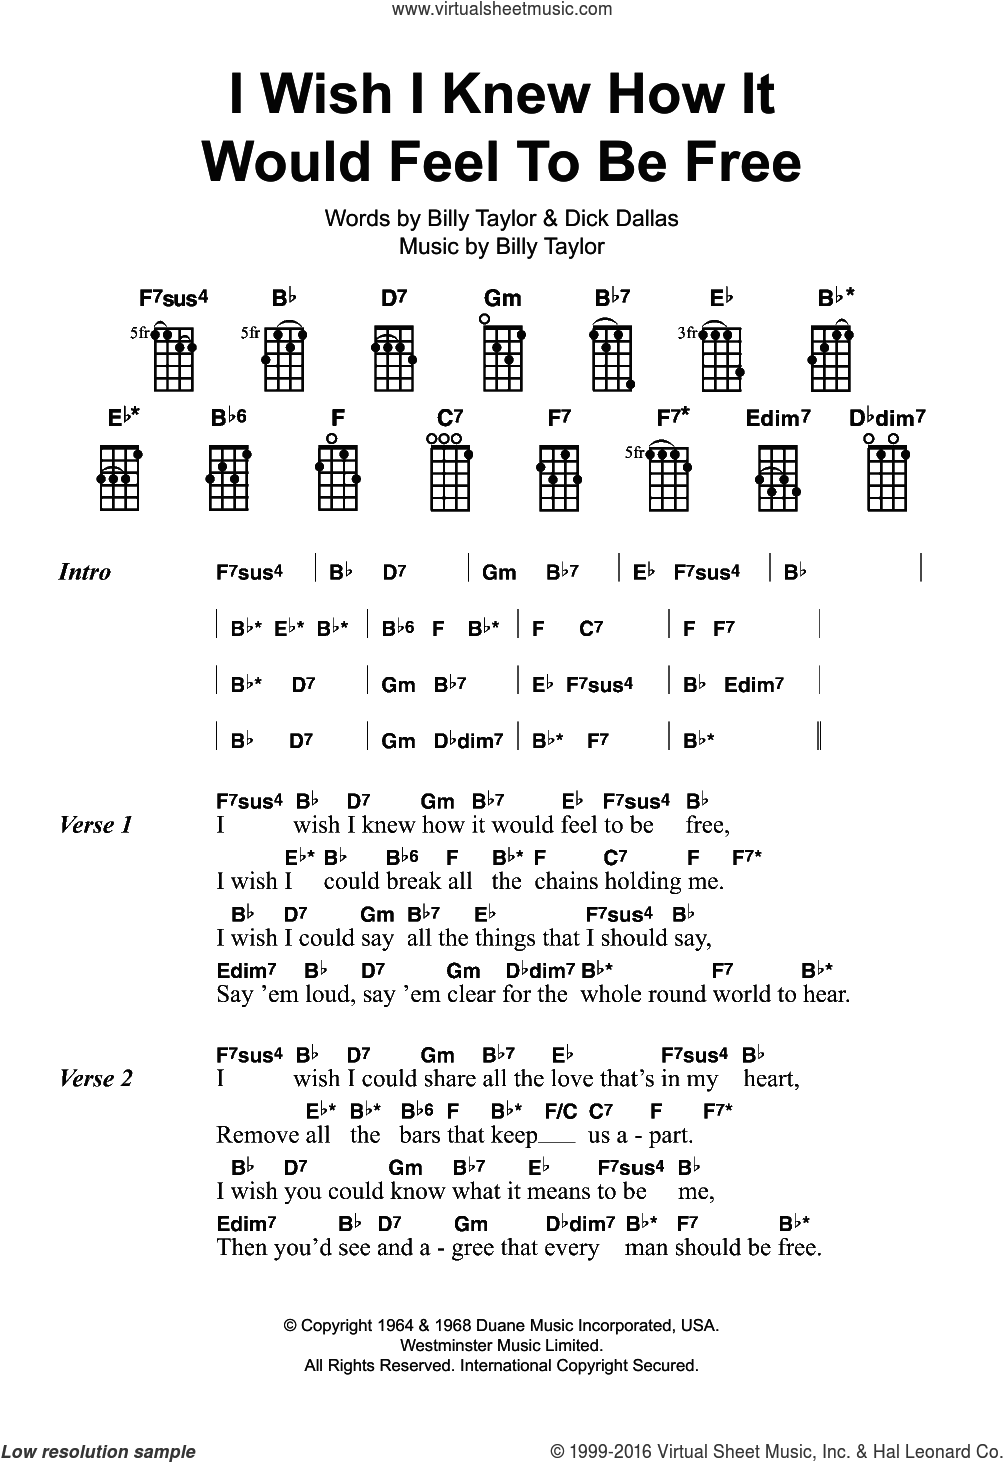 I Wish I Knew How It Would Feel To Be Free sheet music for ukulele by Dick Dallas